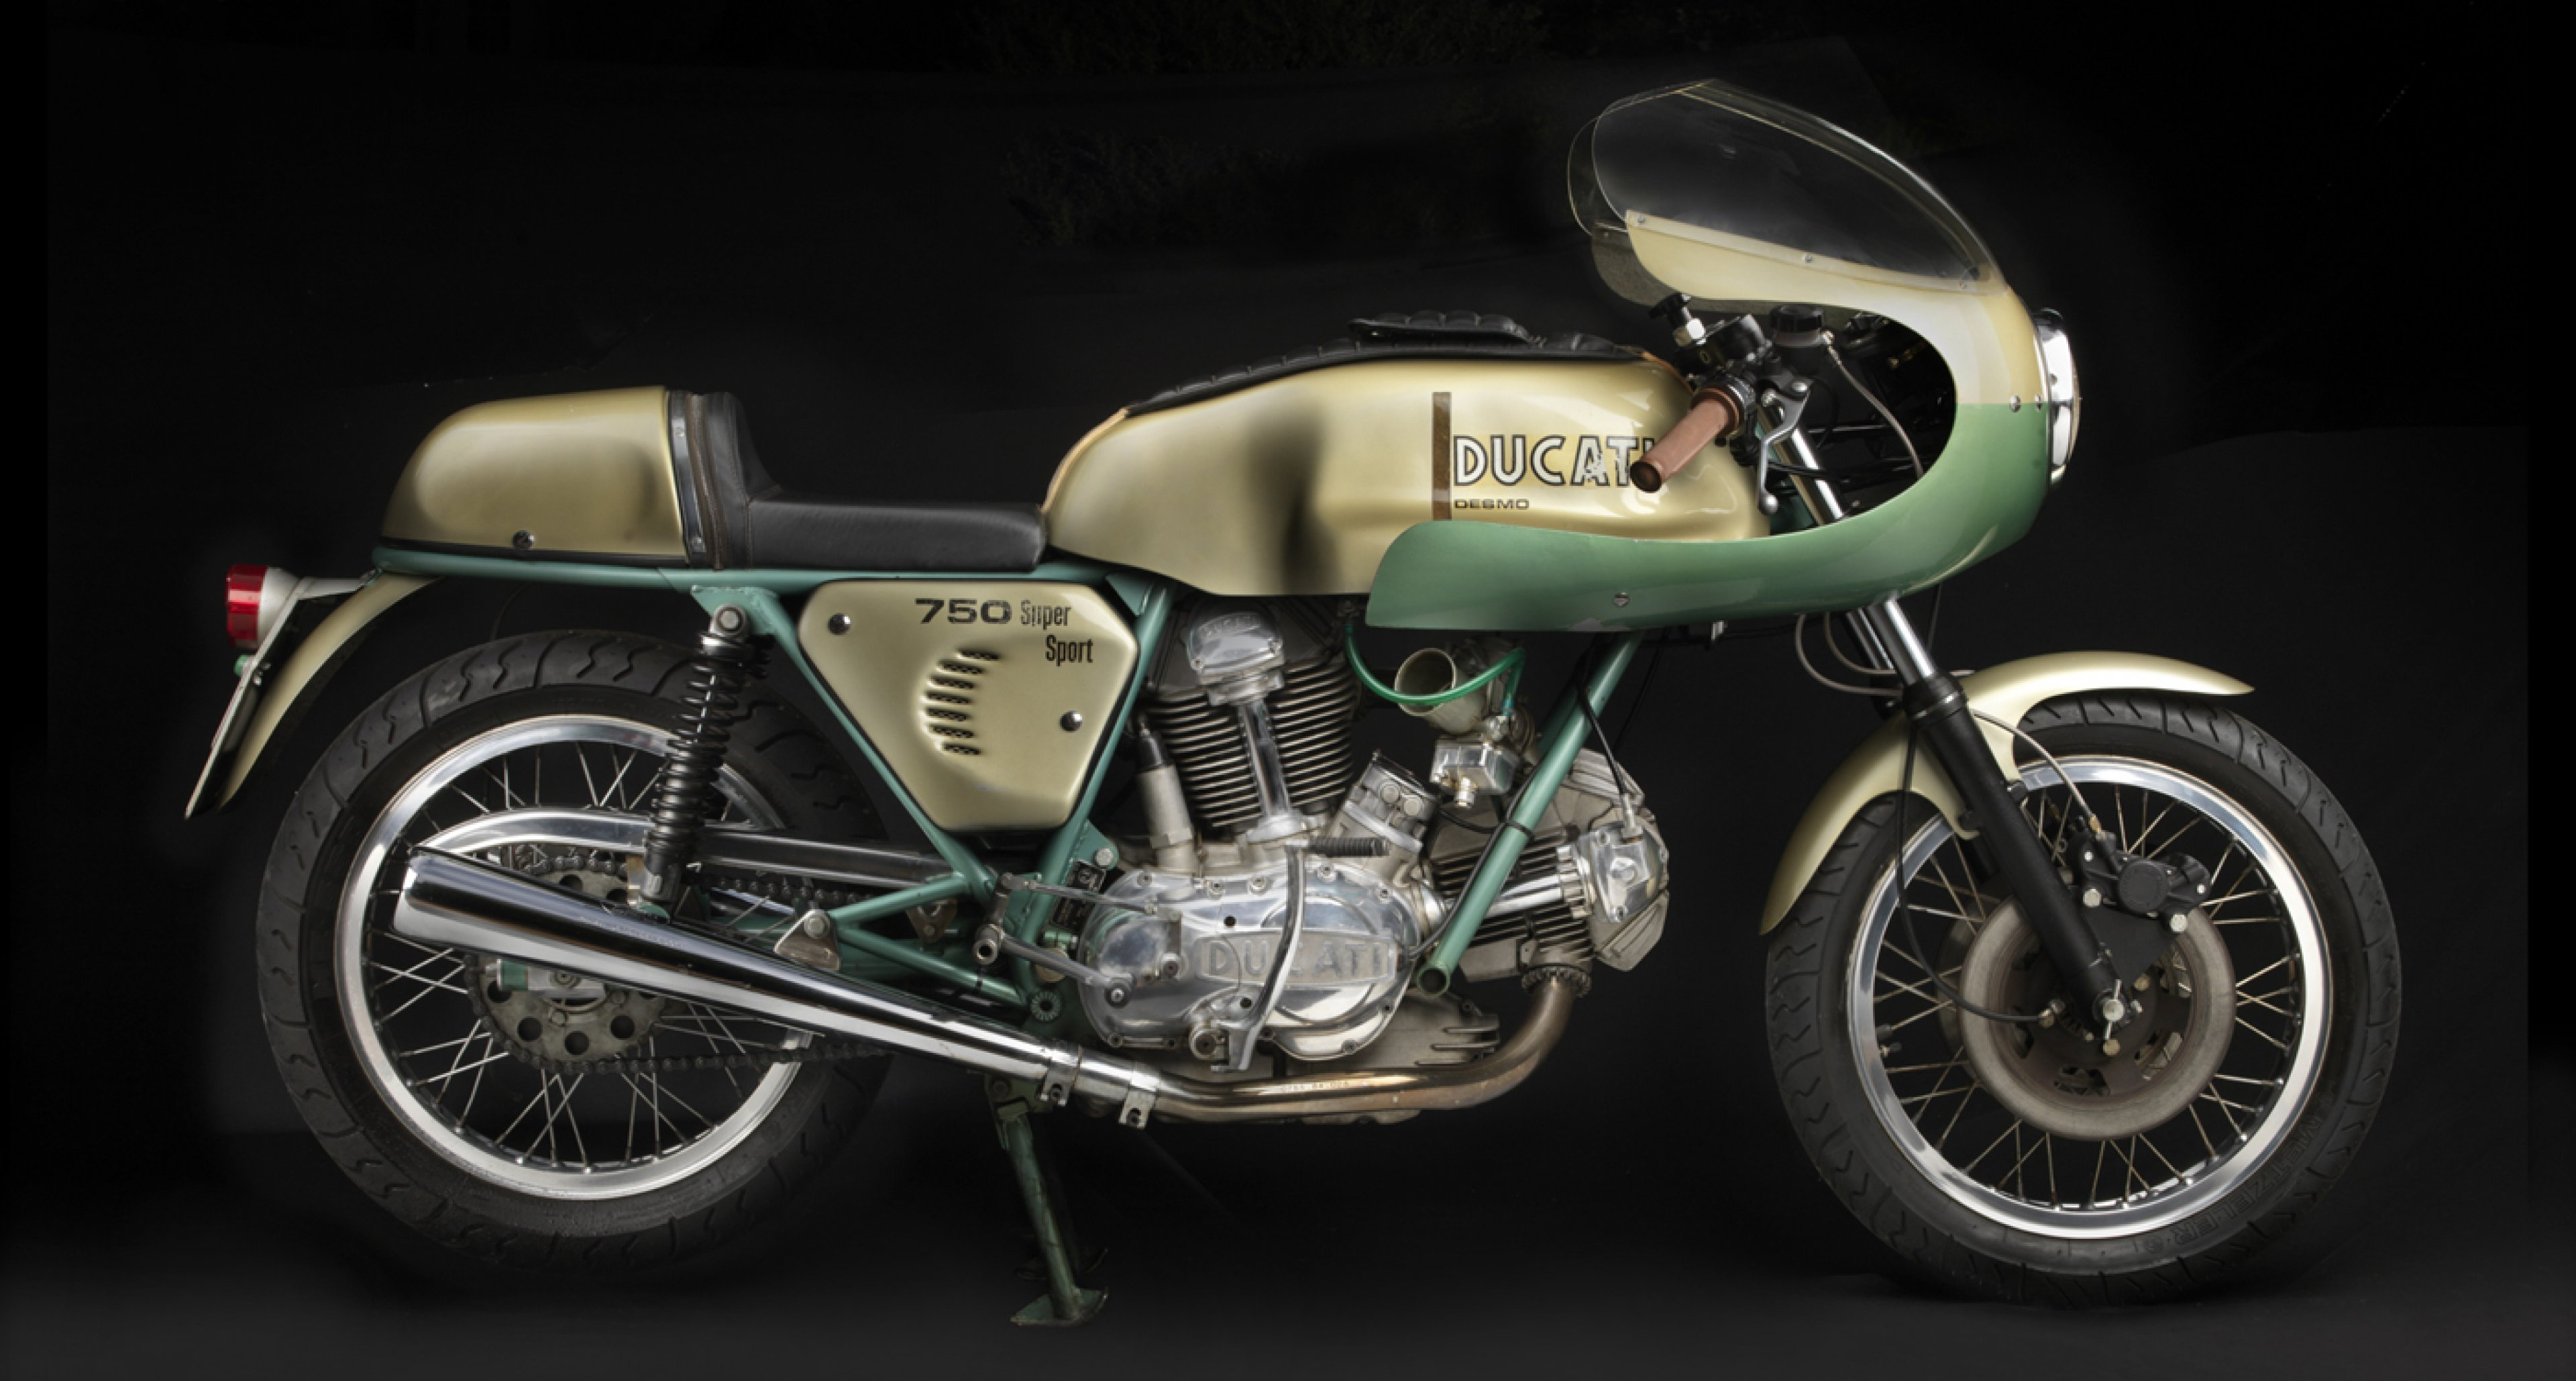 1974 Ducati 750 Super Sport. Collection of Somer and Loyce Hooker. Image © 2015 Peter Harholdt